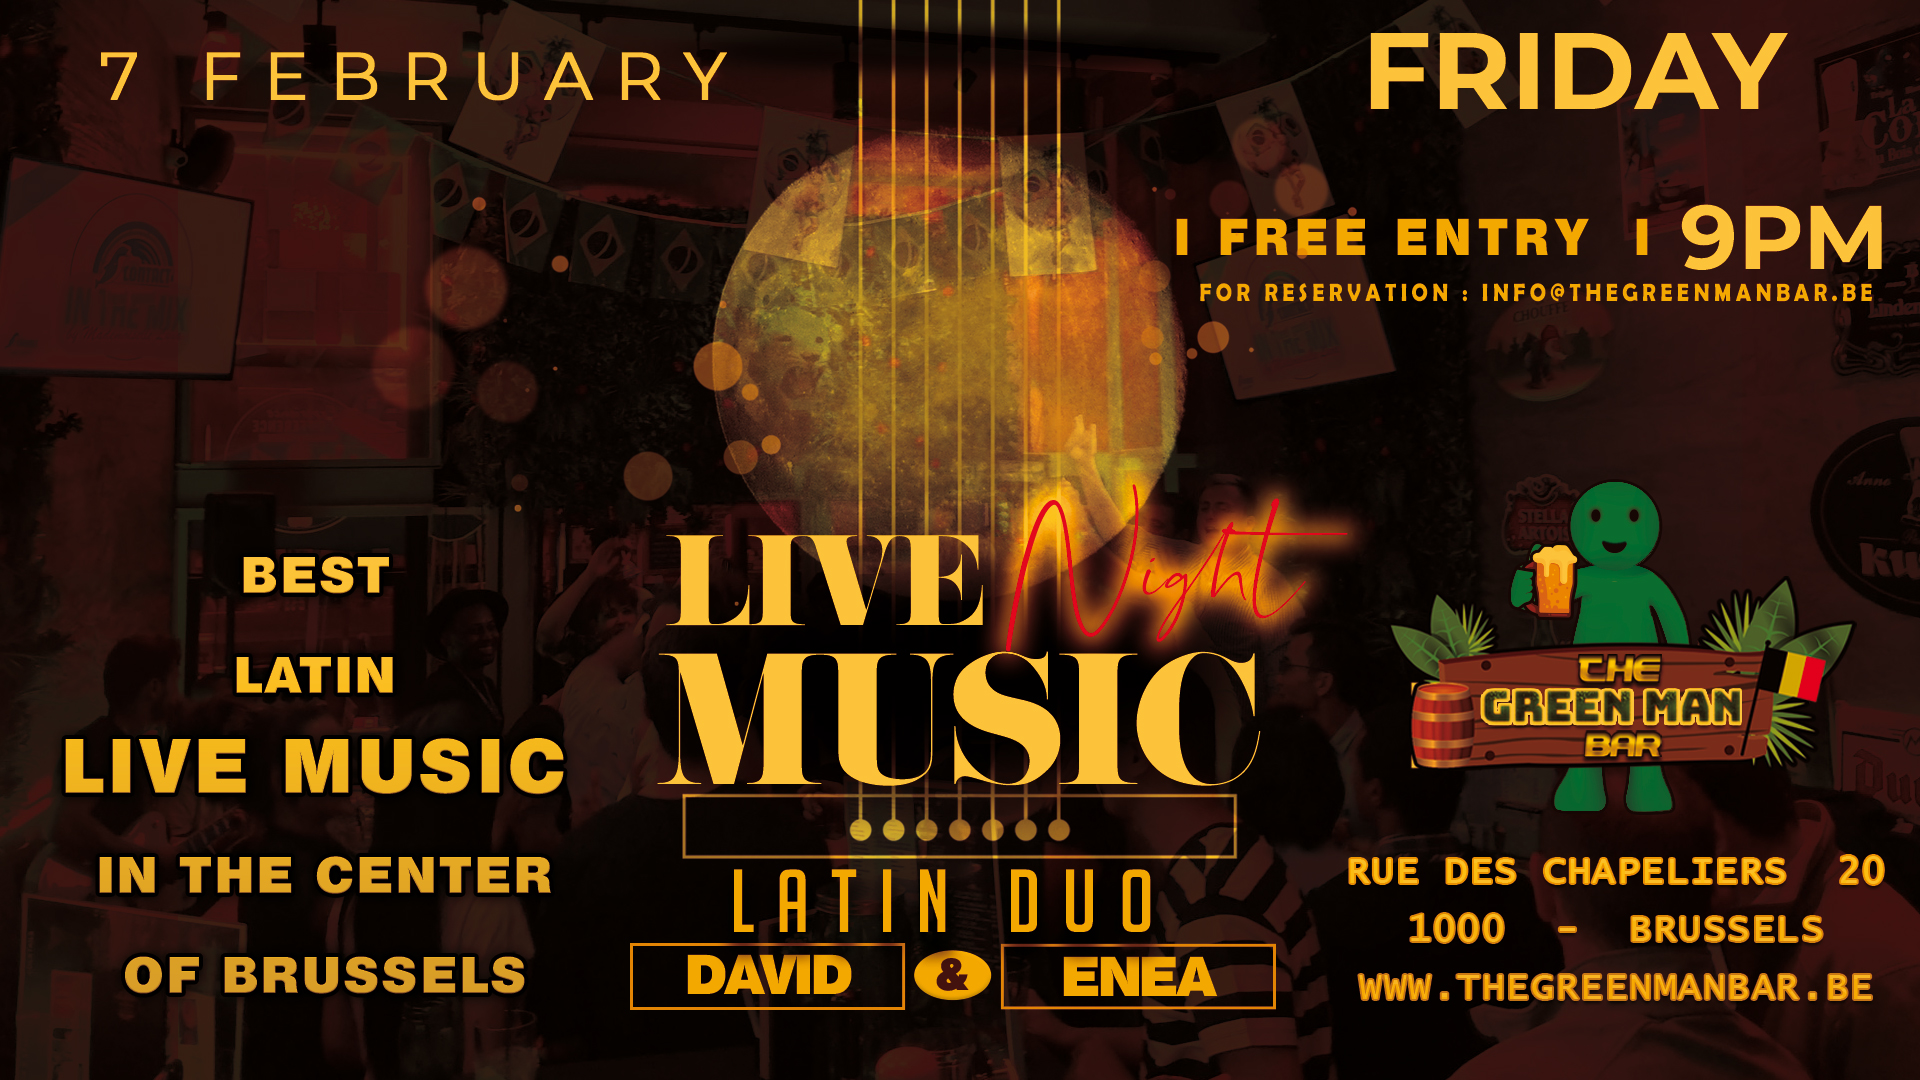 LATIN DUO (David & Enea) live near the Grand Place – Friday 7 February – 9PM